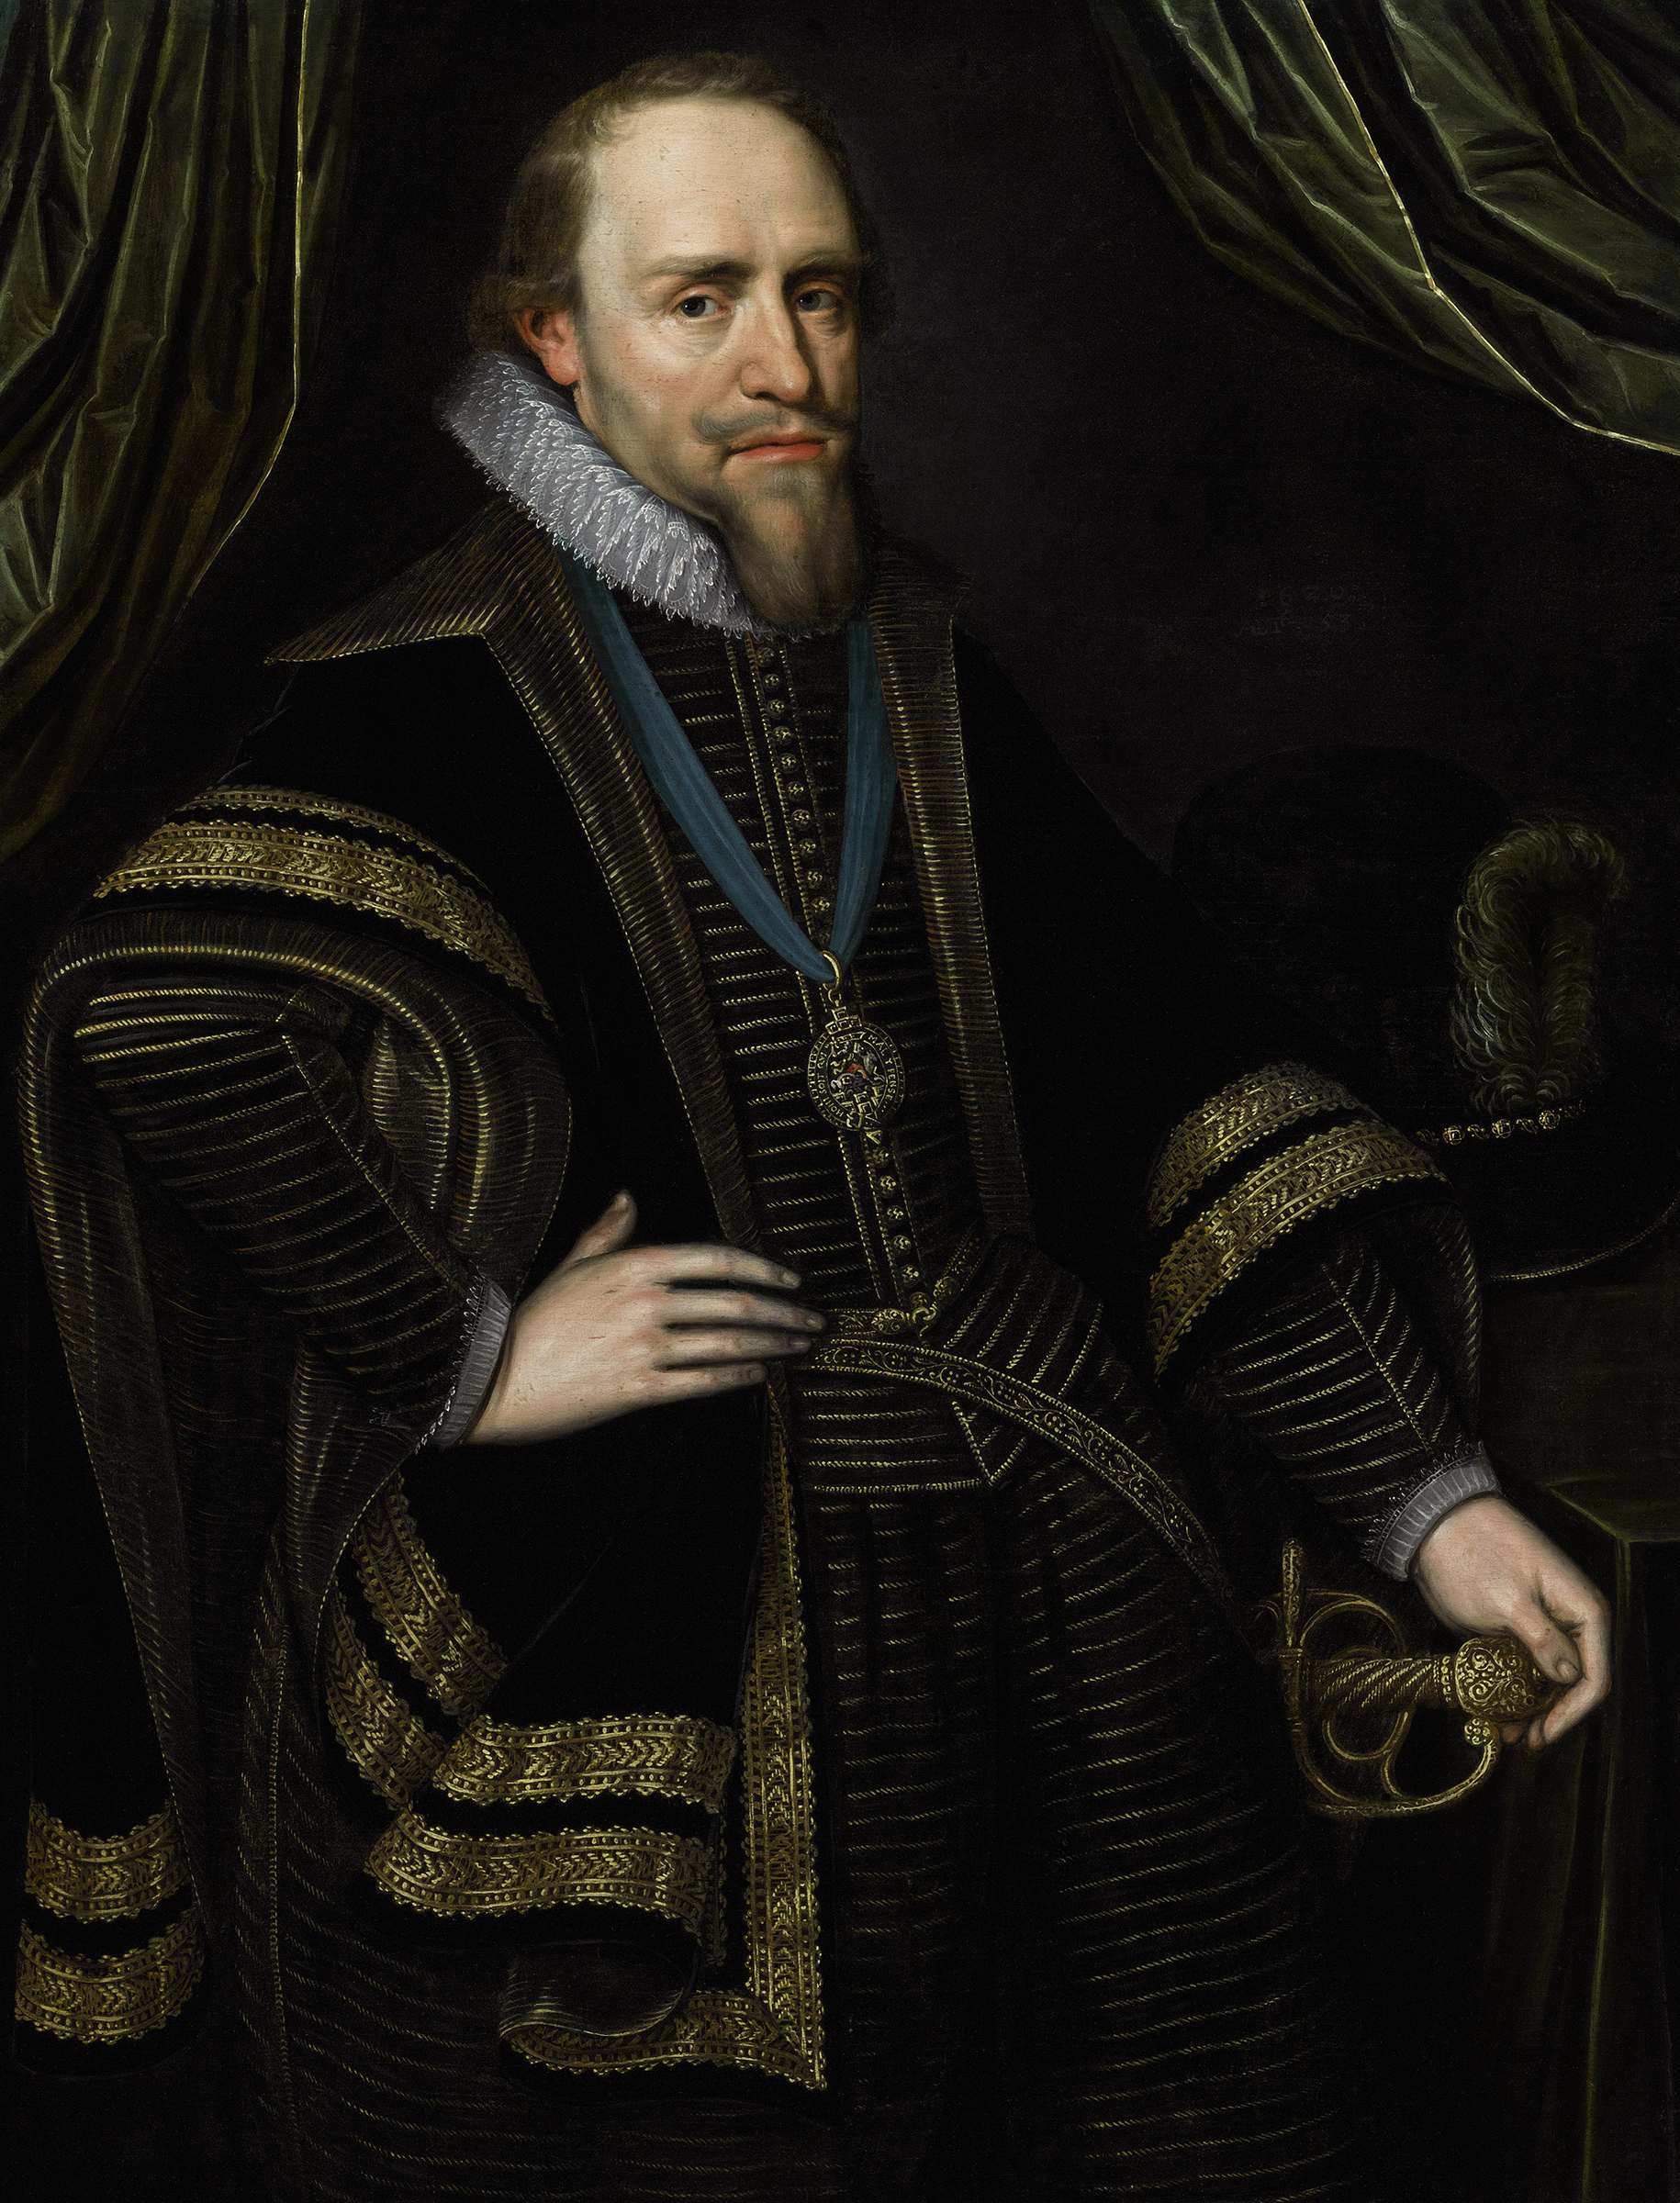 Portrait of Maurice of Nassau (1567-1625), Prince of Orange (1618-1625), Stadtholder of Holland and Zeeland (1585-1625), Stadtholder of Utrecht, Guelders and Overijssel (1590-1625), Stadtholder of Groningen (1620-1625), 1620